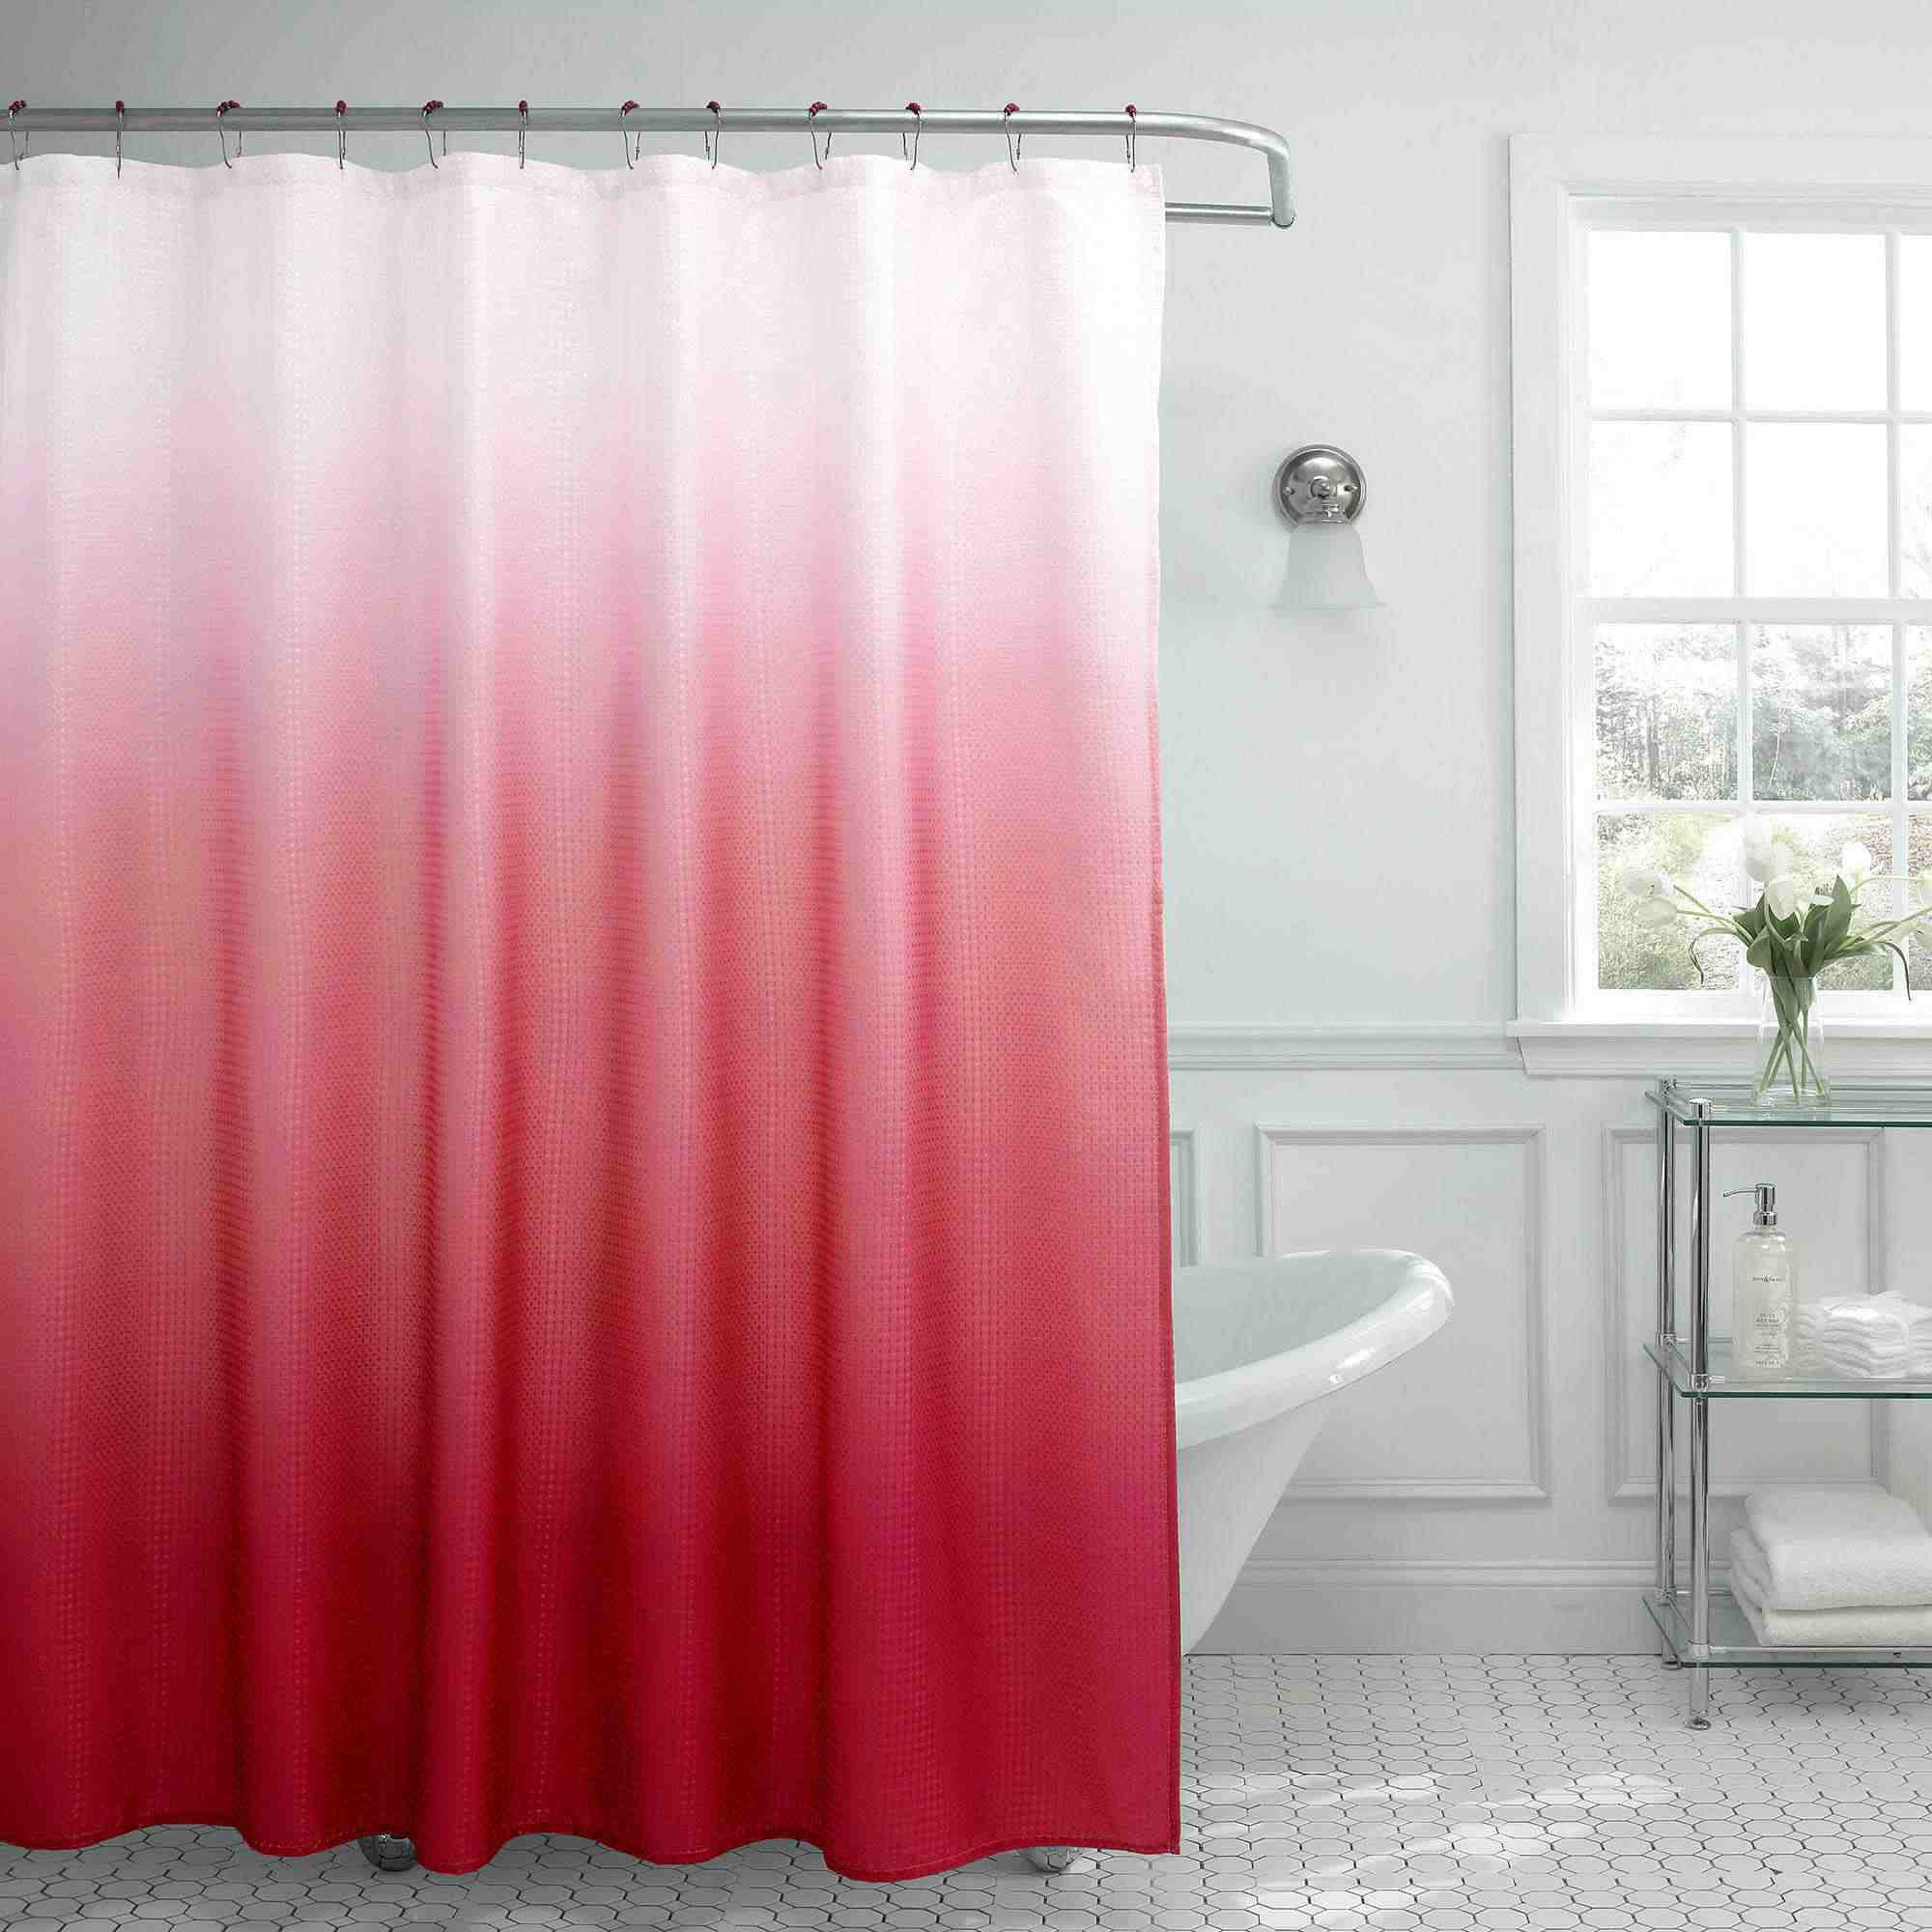 full curtain curtains image coolc design sofa of cool stall size x inch fabric shower